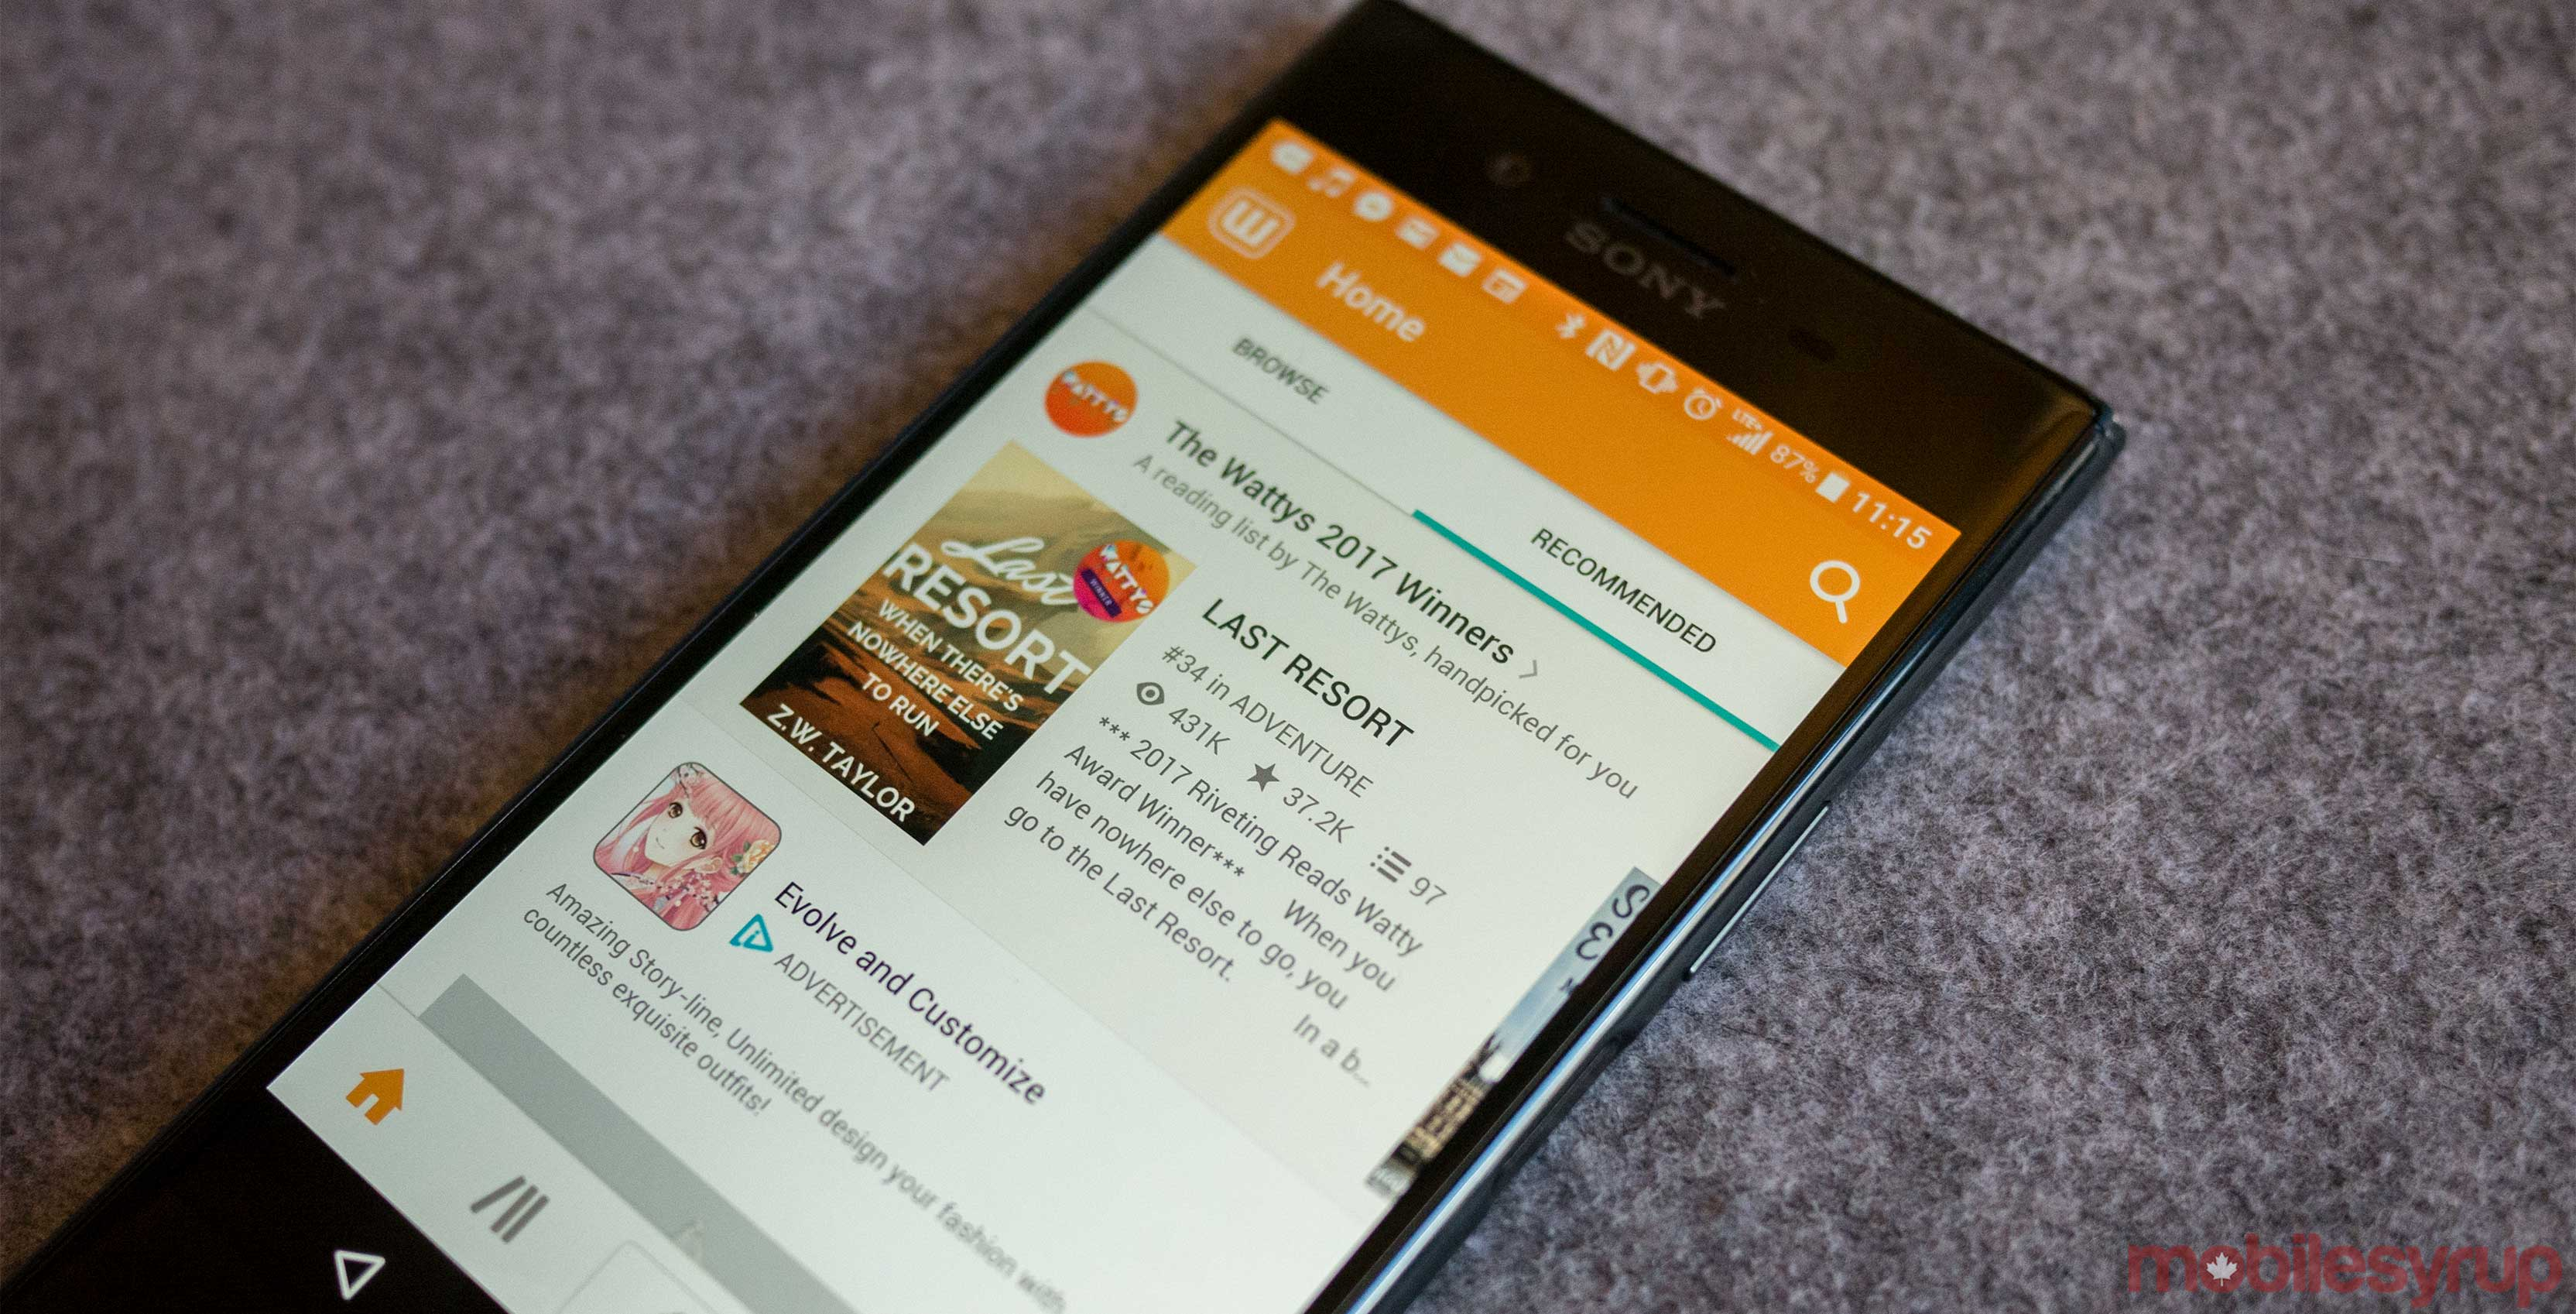 Toronto-based Wattpad to publish popular online stories into books